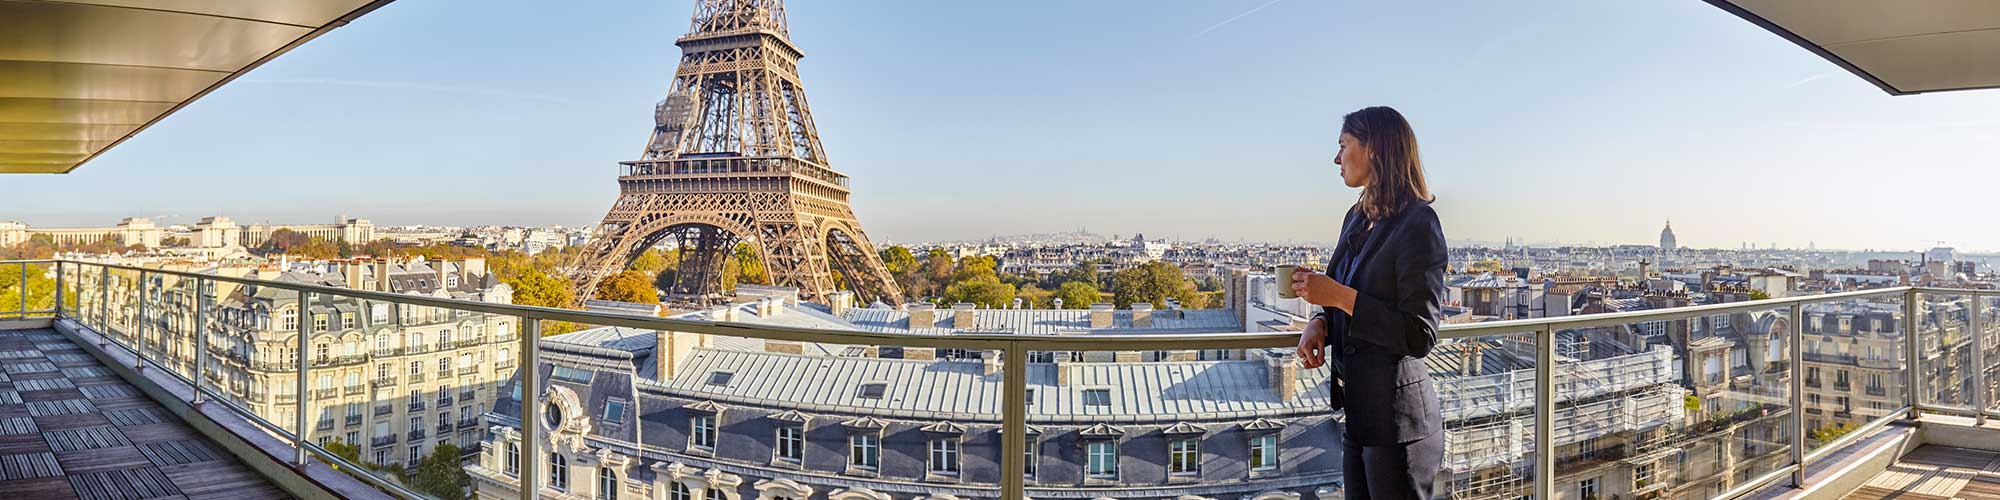 Hotel with Eiffel Tower view